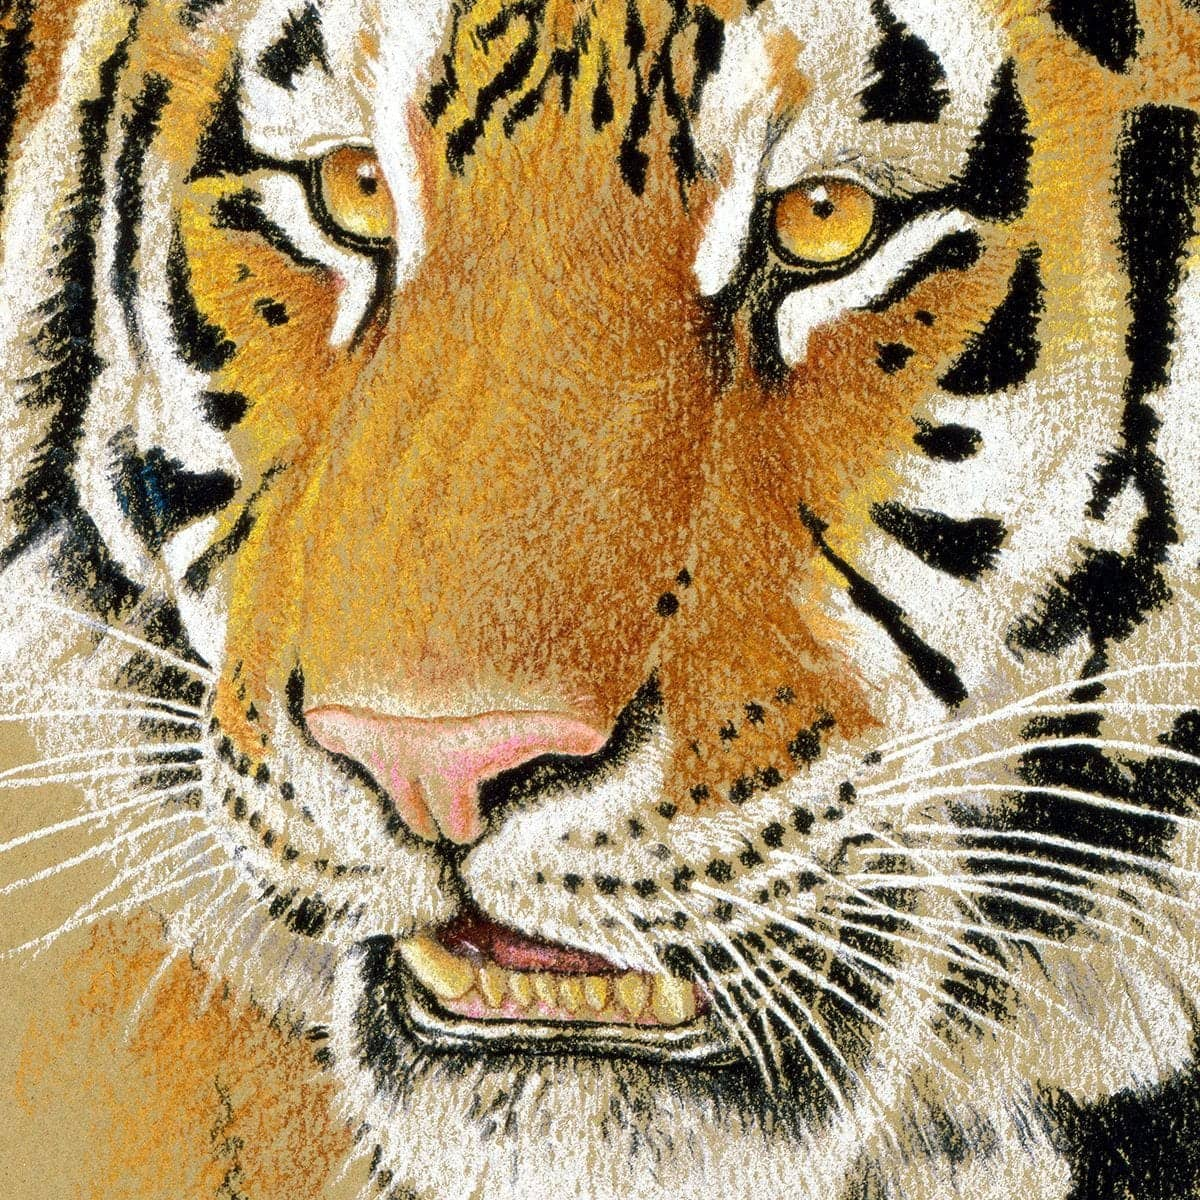 Tiger Portrait - Canvas Print by Glen Loates from the Glen Loates Store